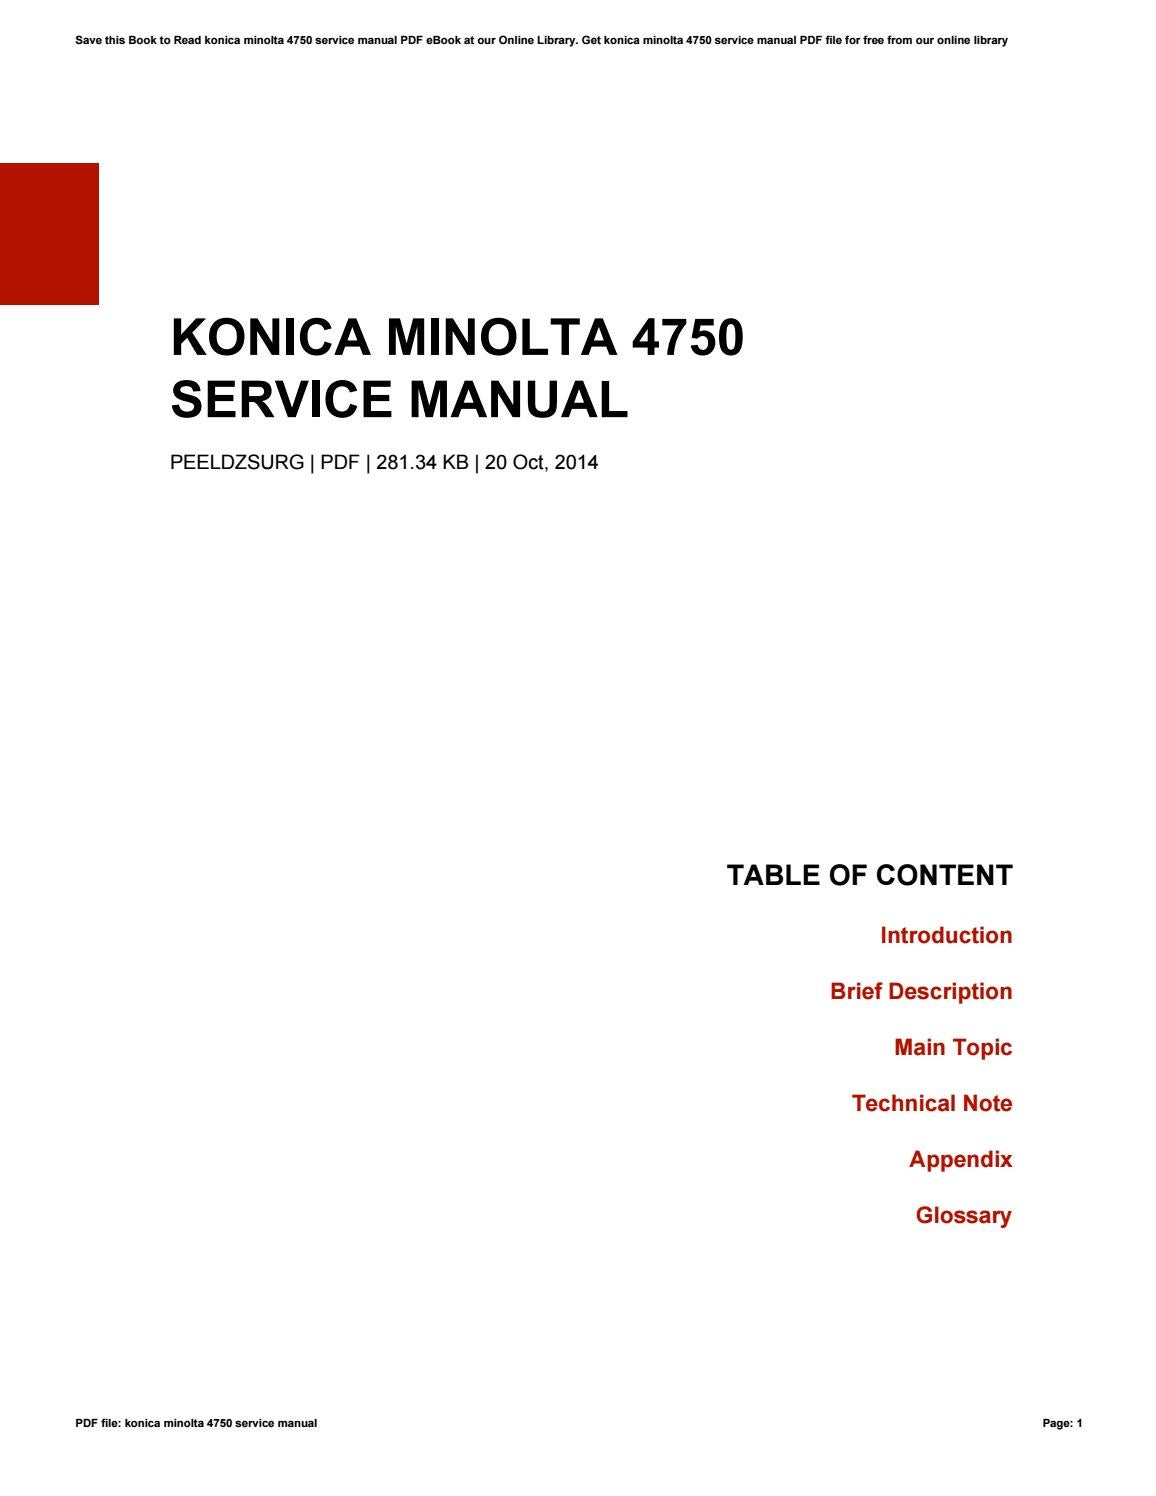 Konica minolta 4750 service manual by NorrisRandall2987